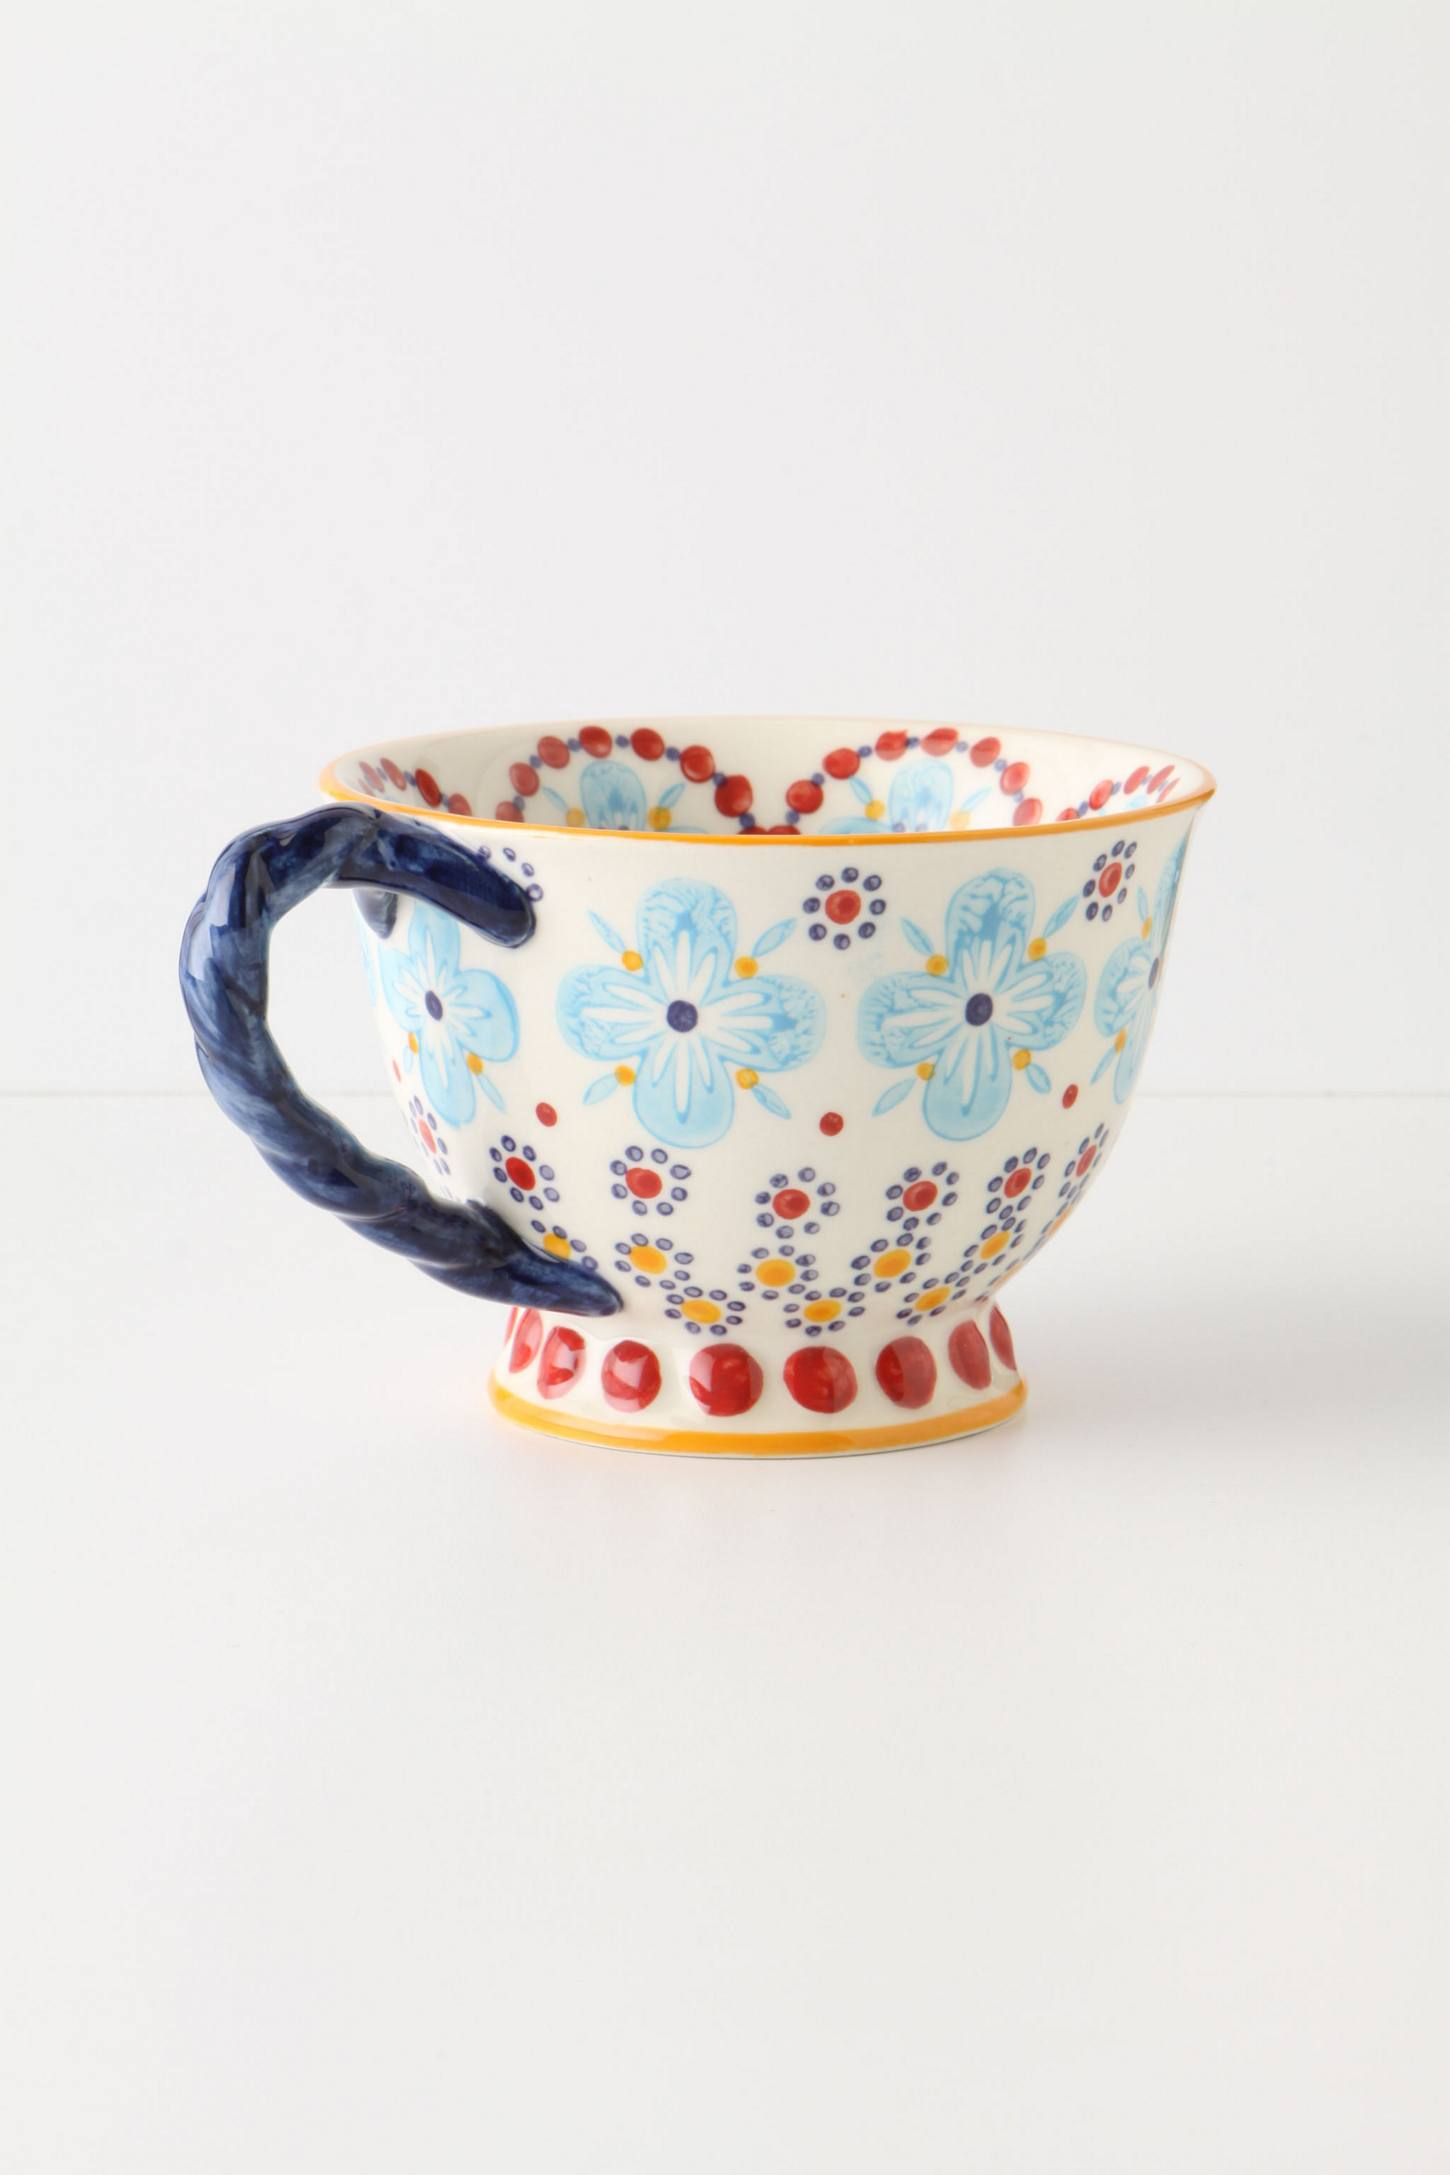 Slide View: 4: With A Twist Teacup